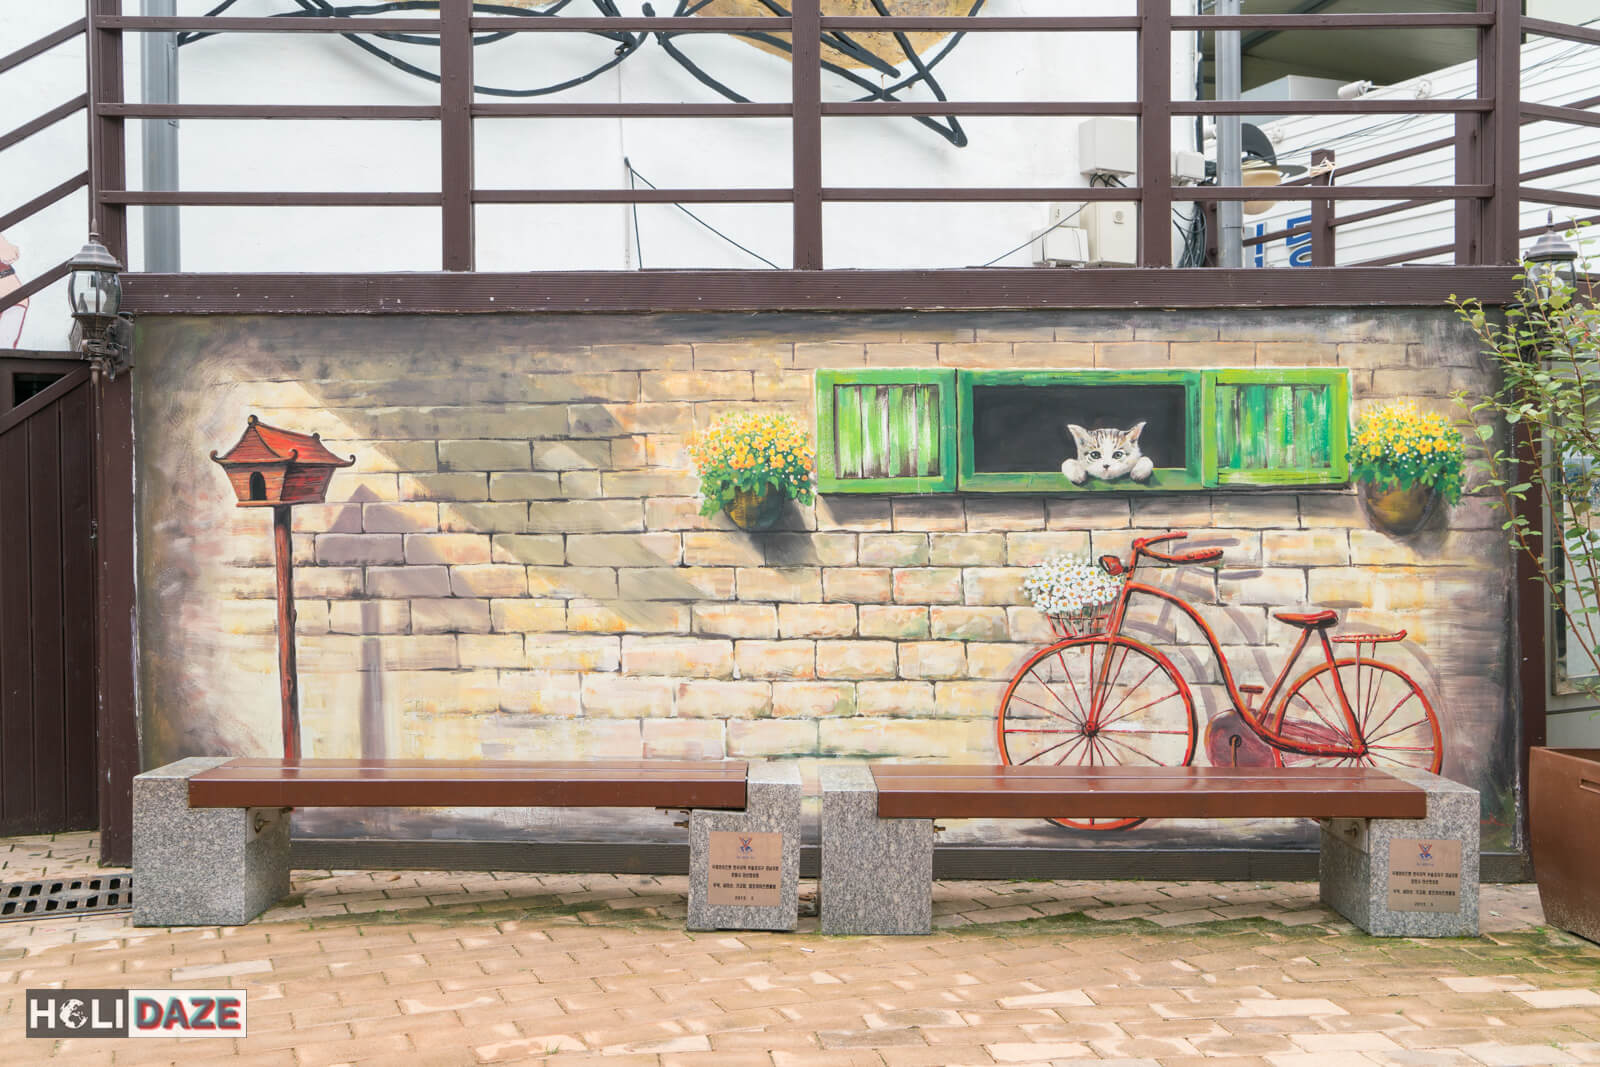 Street art mural outside of the Changdong Art Museum in Masan, South Korea